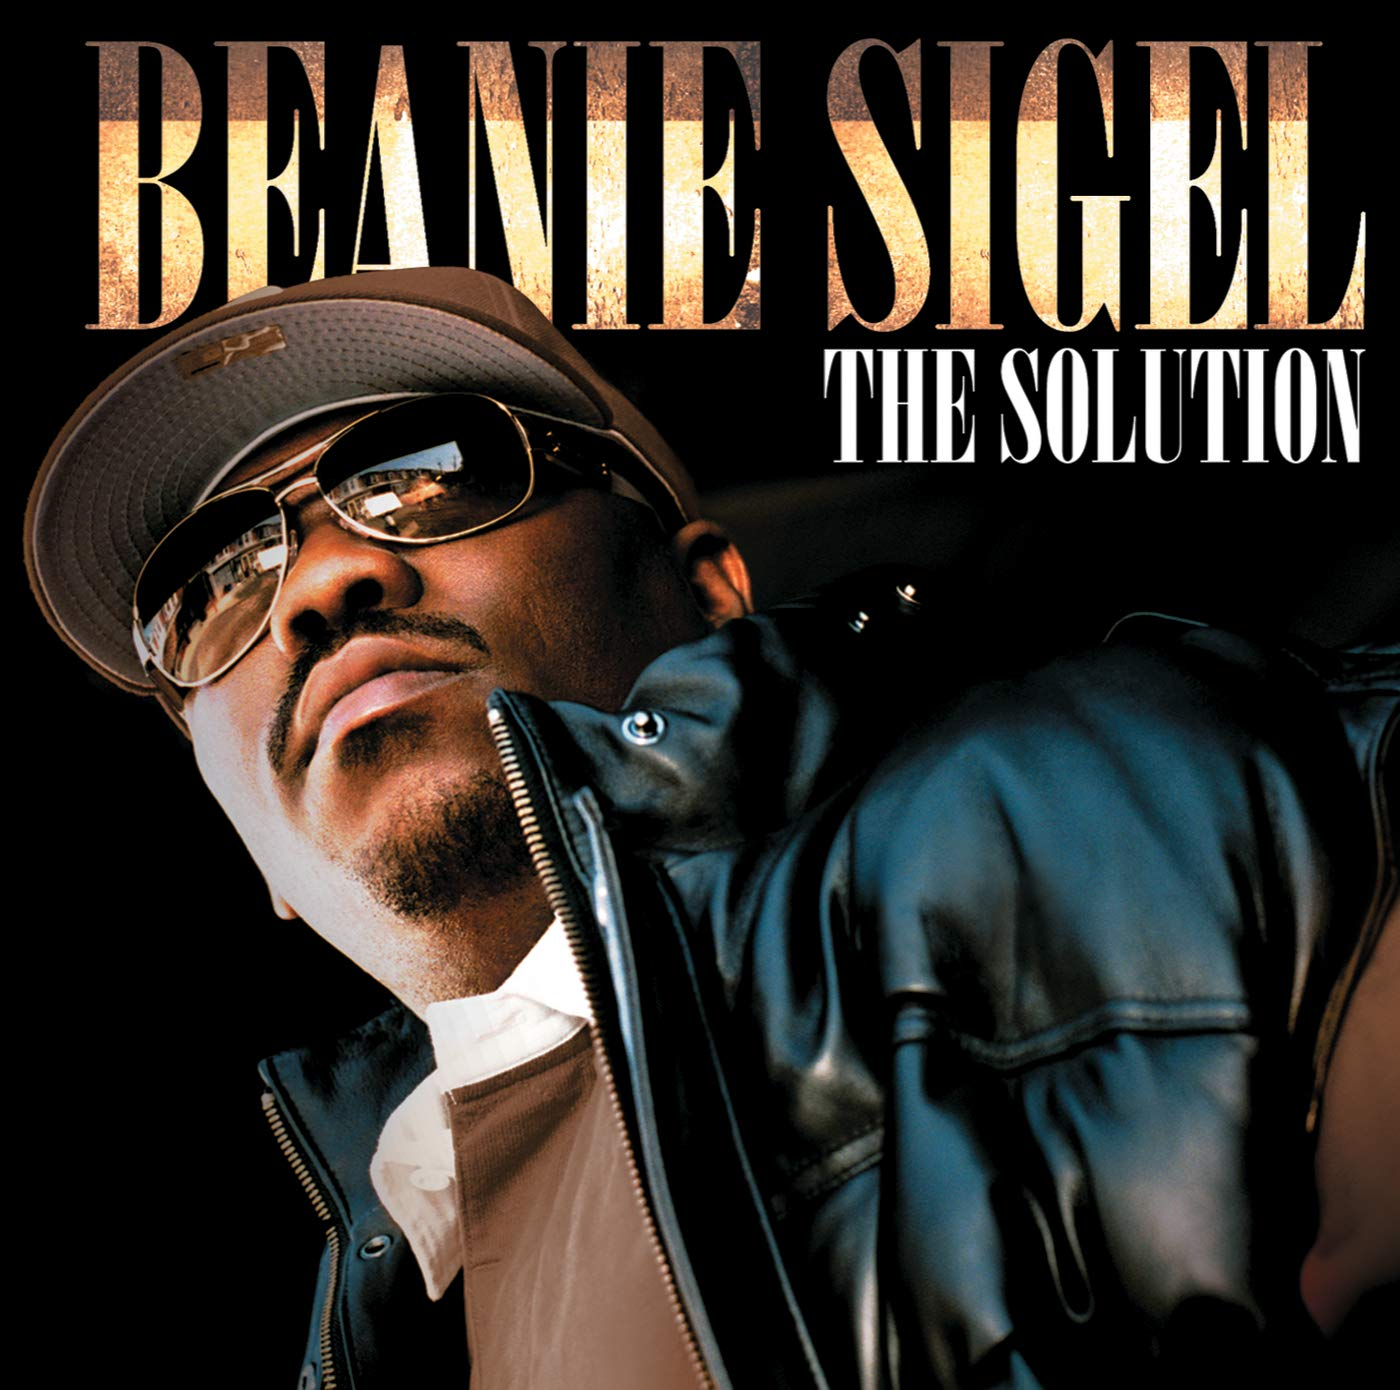 Beanie Sigel - The Solution (2007) [FLAC] Download